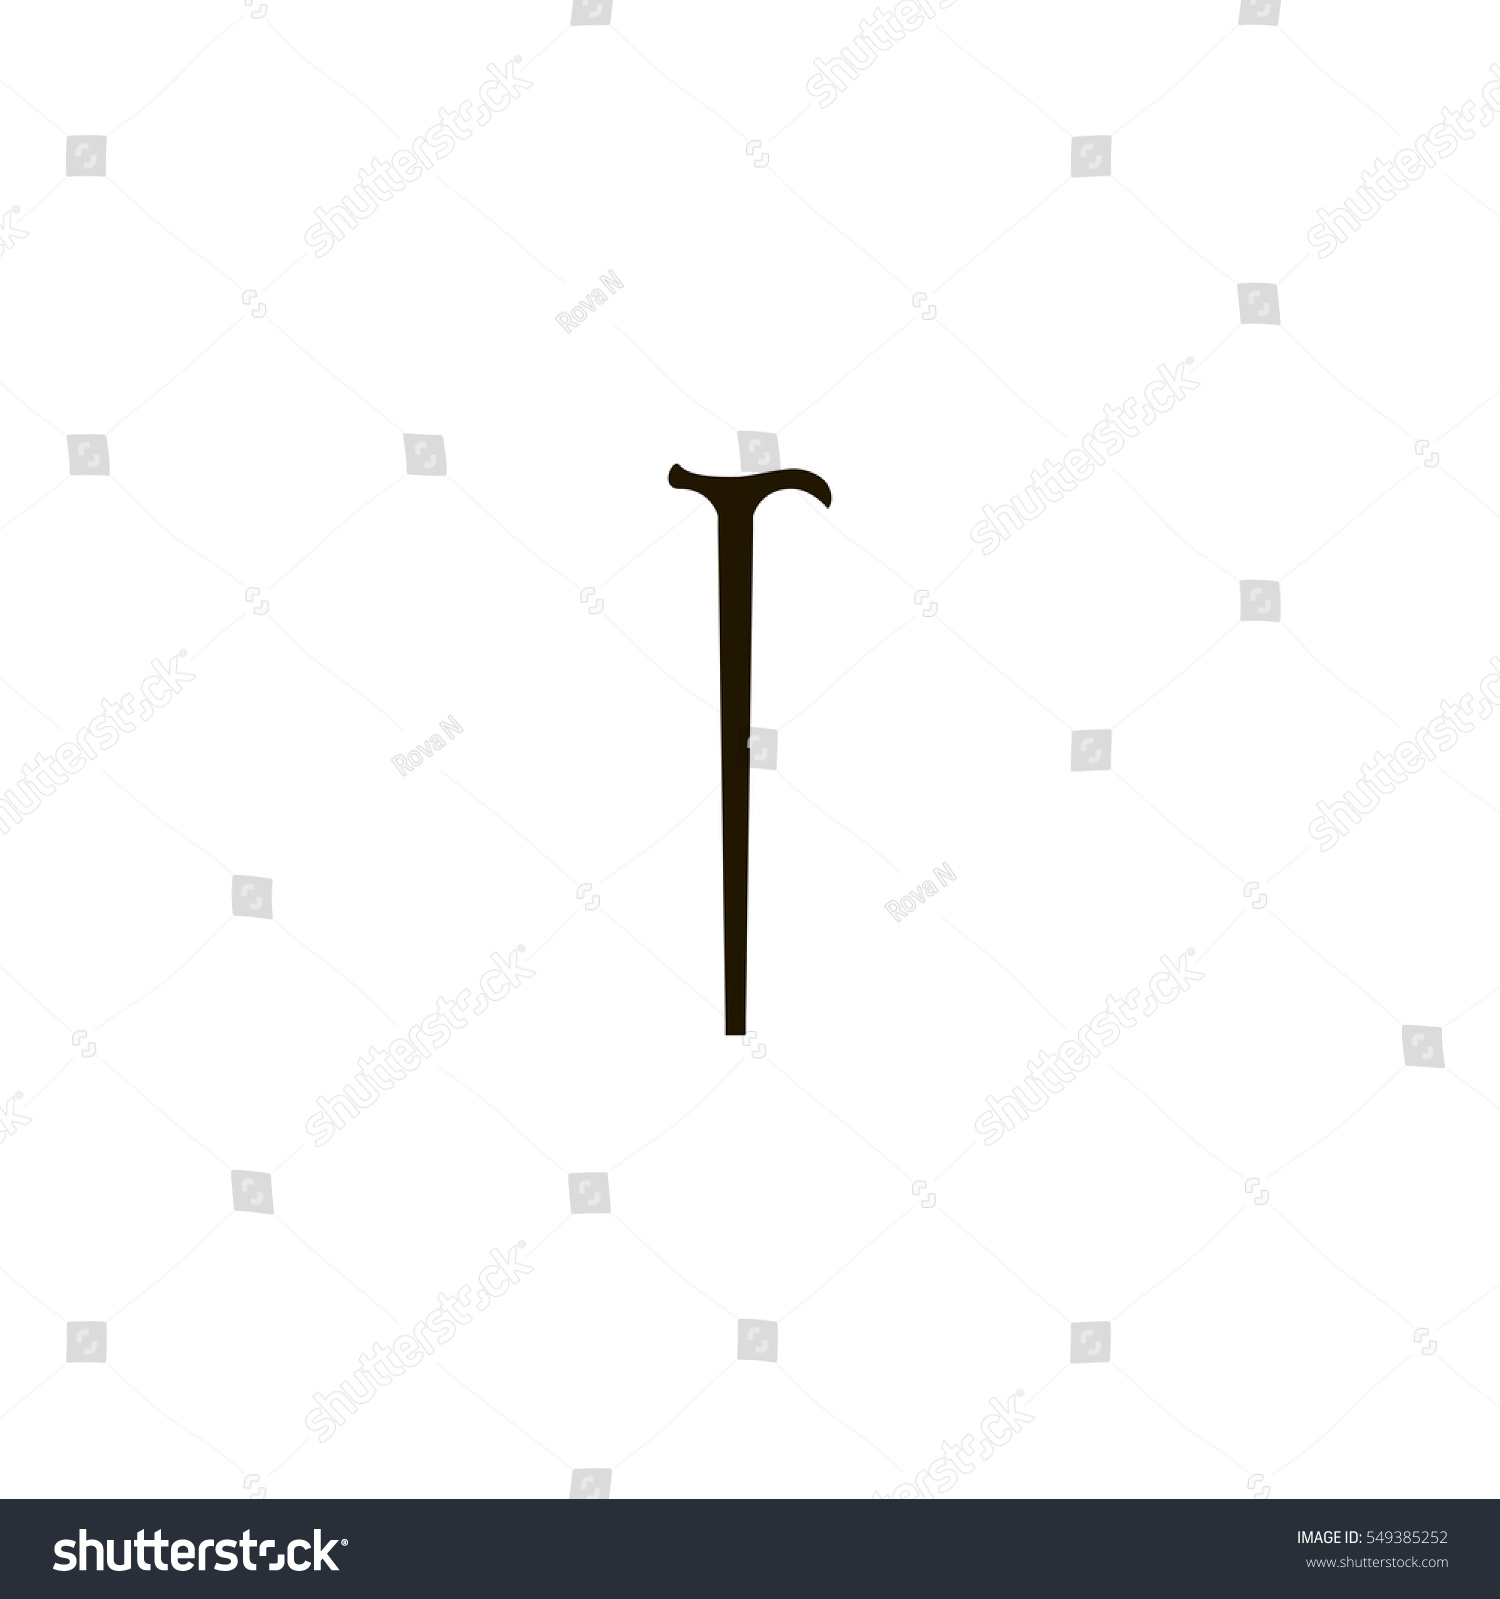 Walking stick icon sign design stock vector 549385252 shutterstock walking stick icon sign design biocorpaavc Image collections